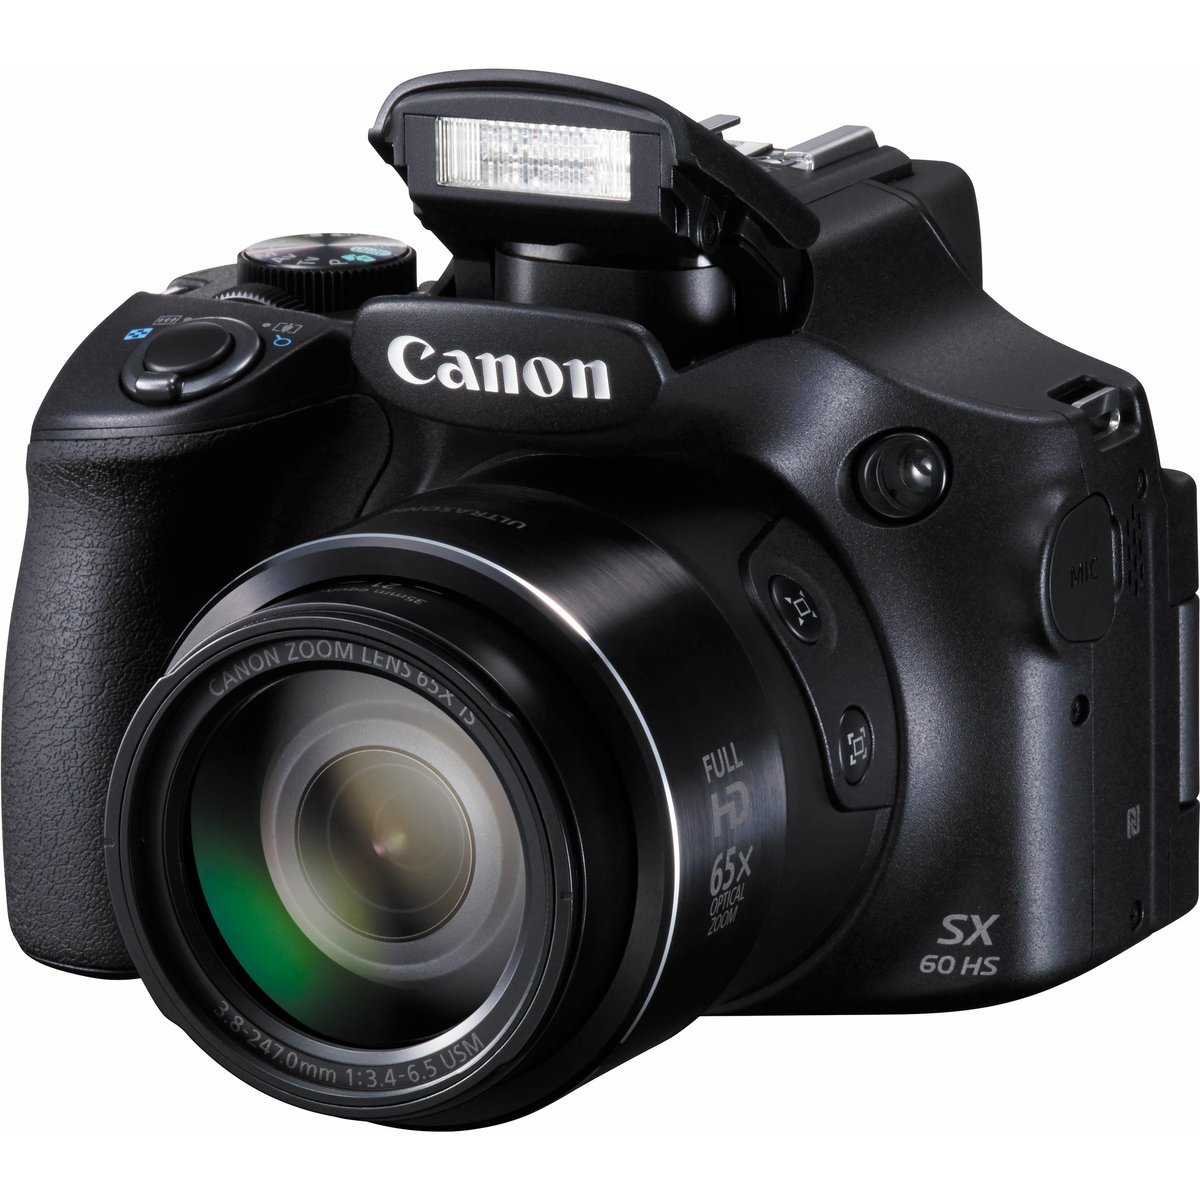 Image of Canon PowerShot SX60 Digital Compact Camera